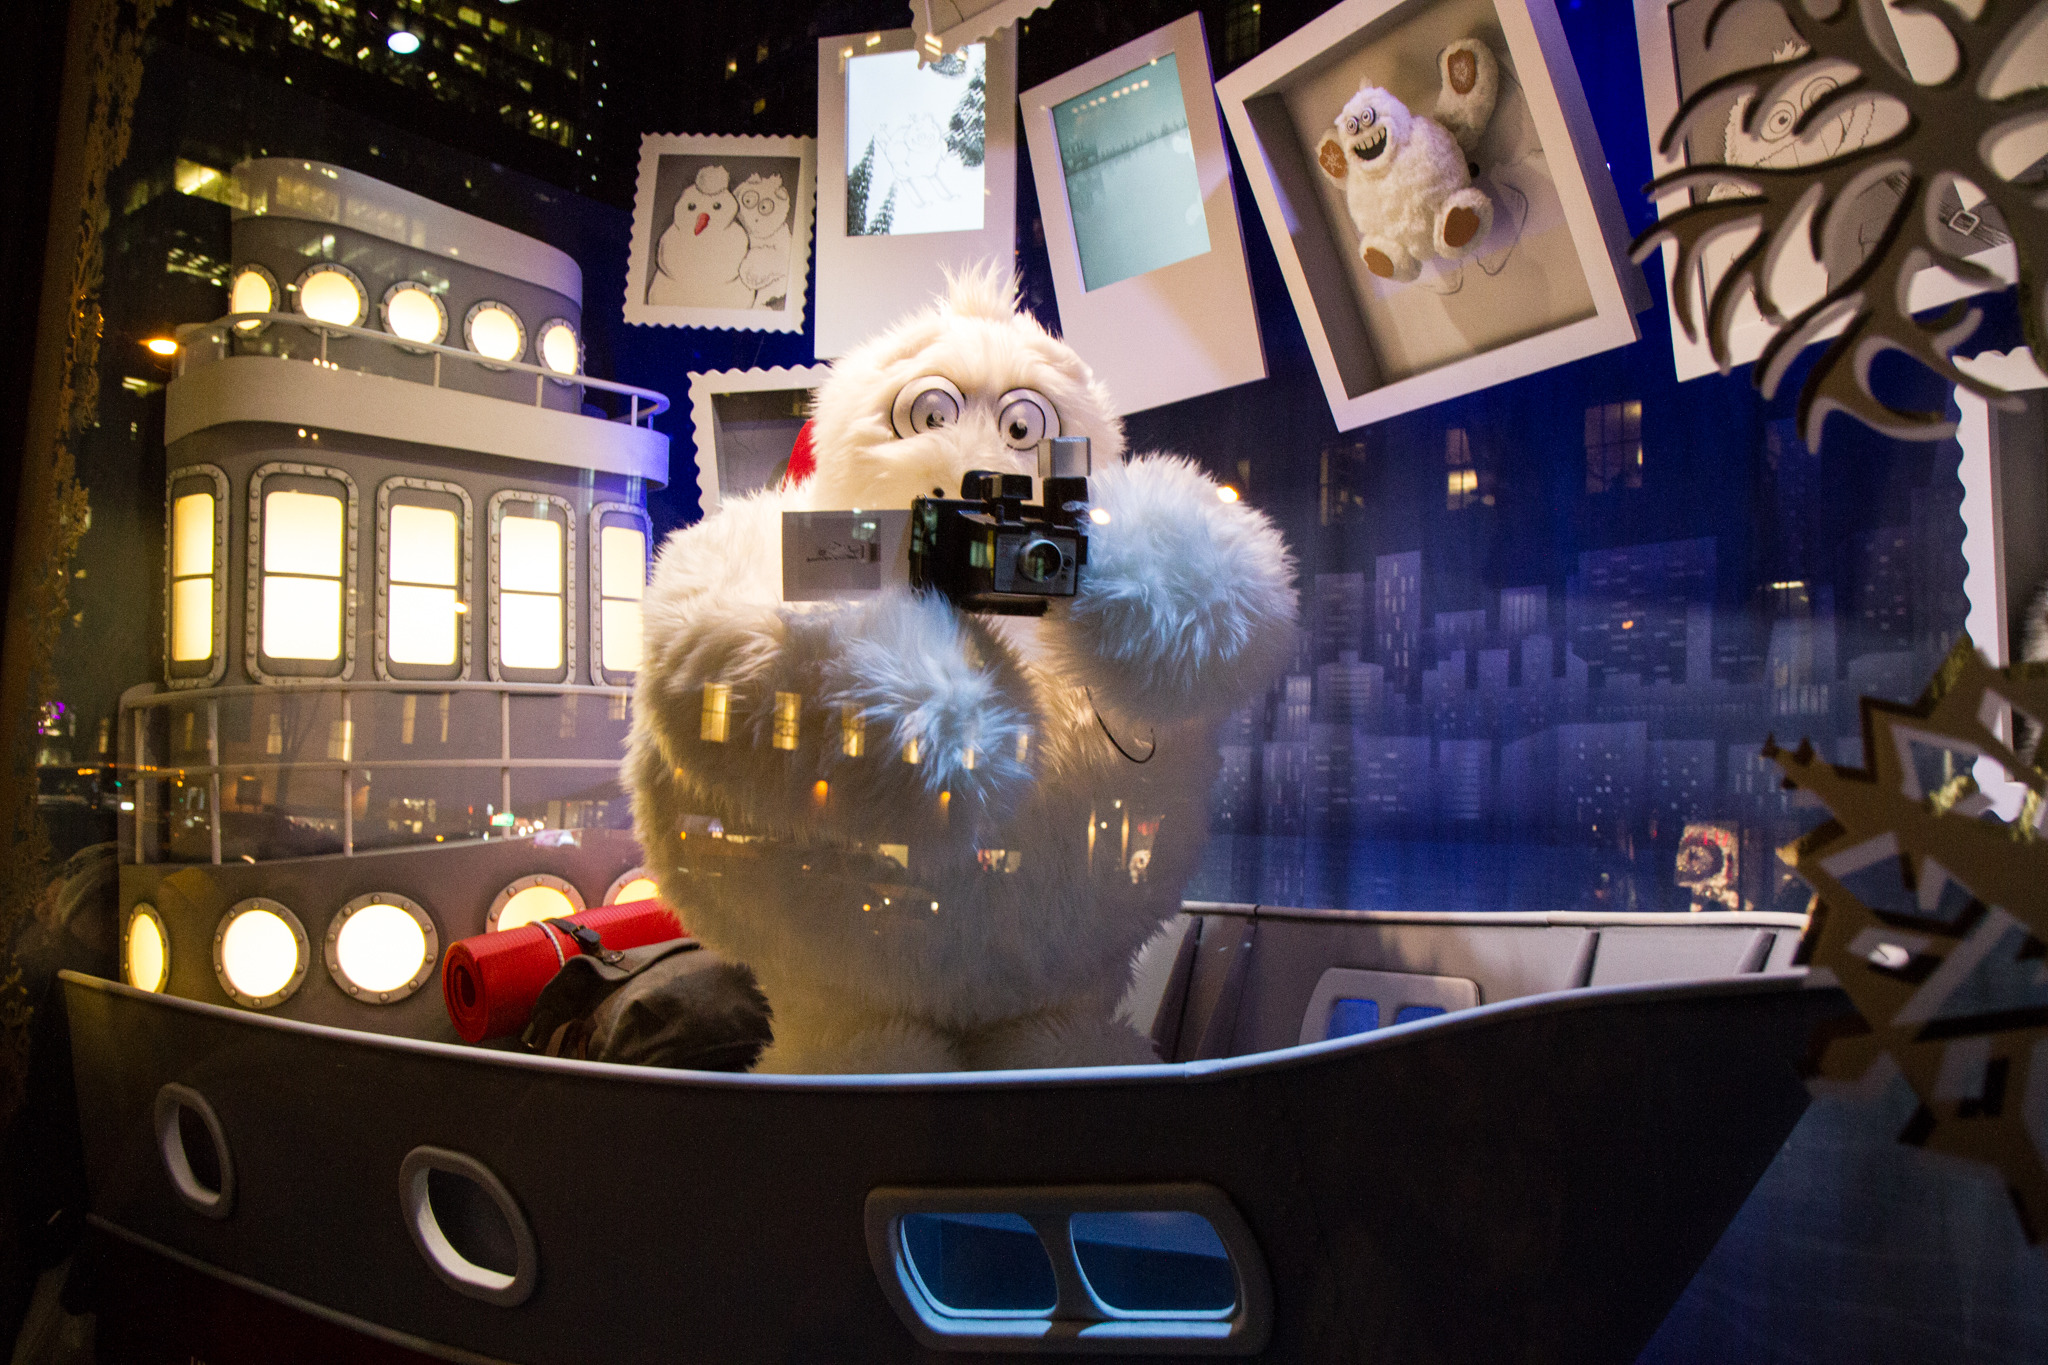 Saks Fifth Avenue Holiday Windows Ting at gøre i New York-2431